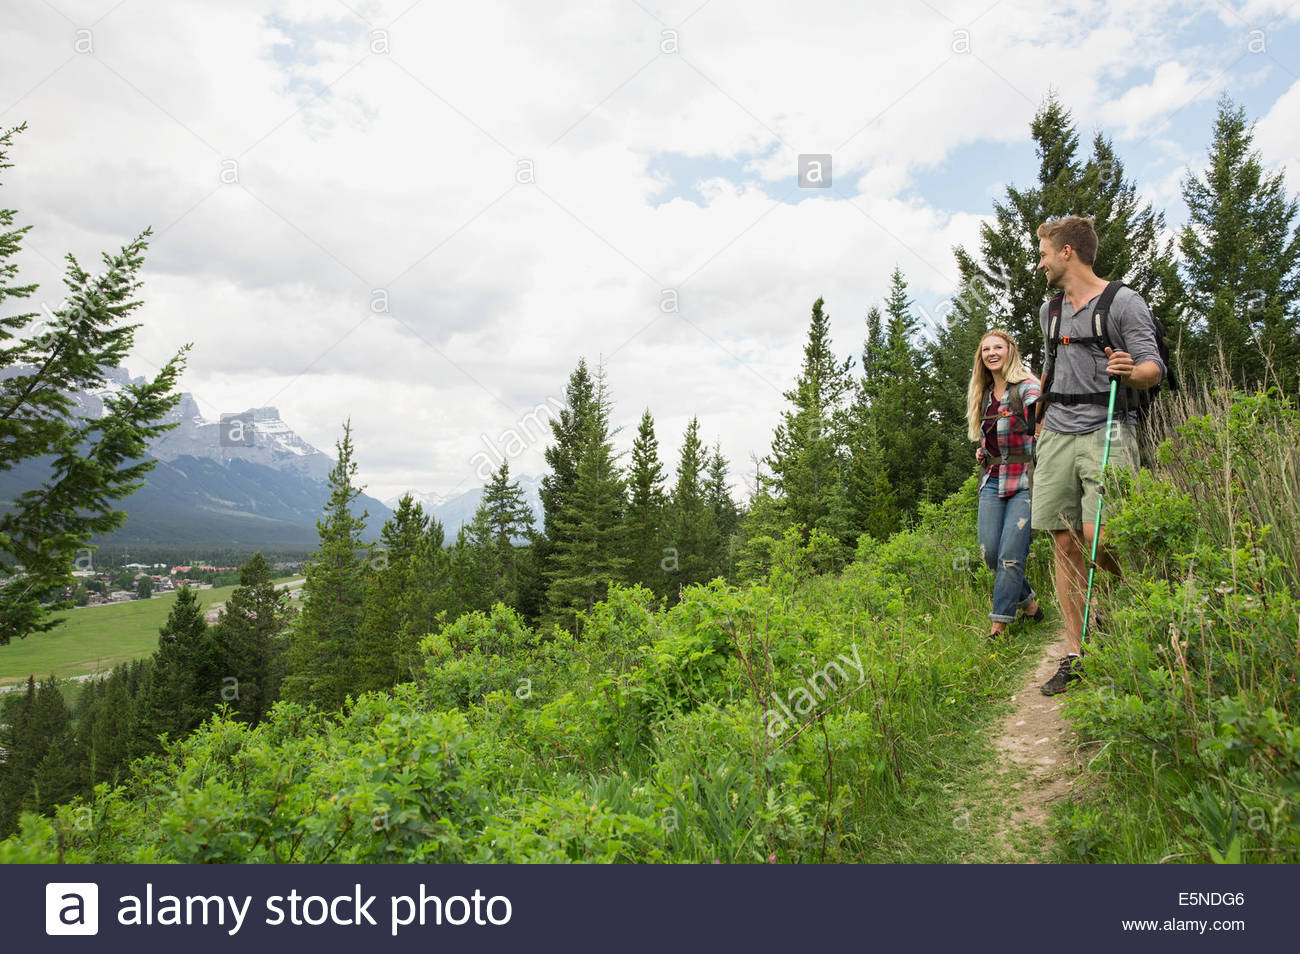 Couple hiking on trail near mountains - Stock Image